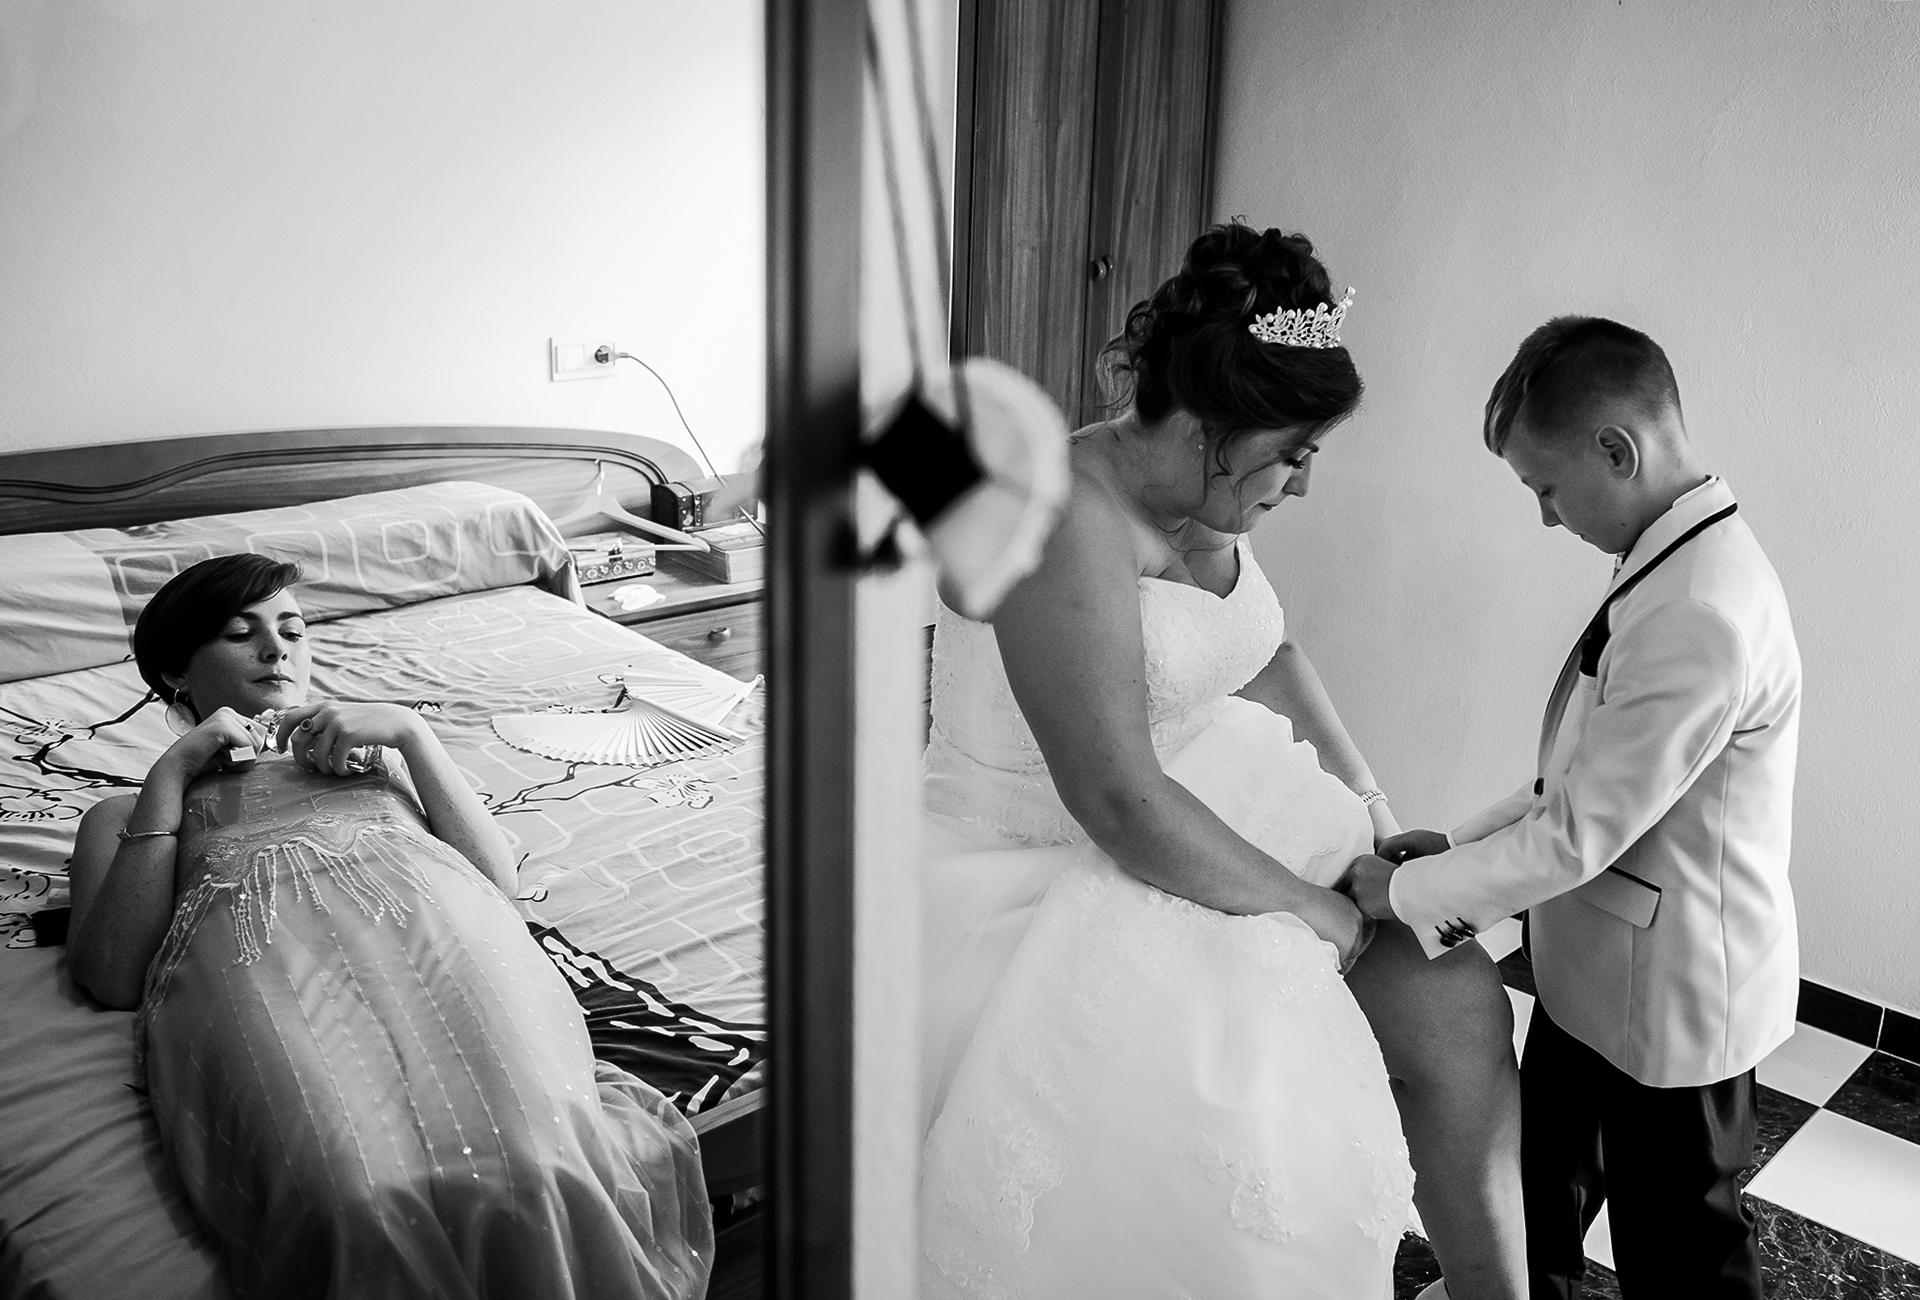 Aguilas small wedding preparation picture | The bride's son helped put the finishing touches